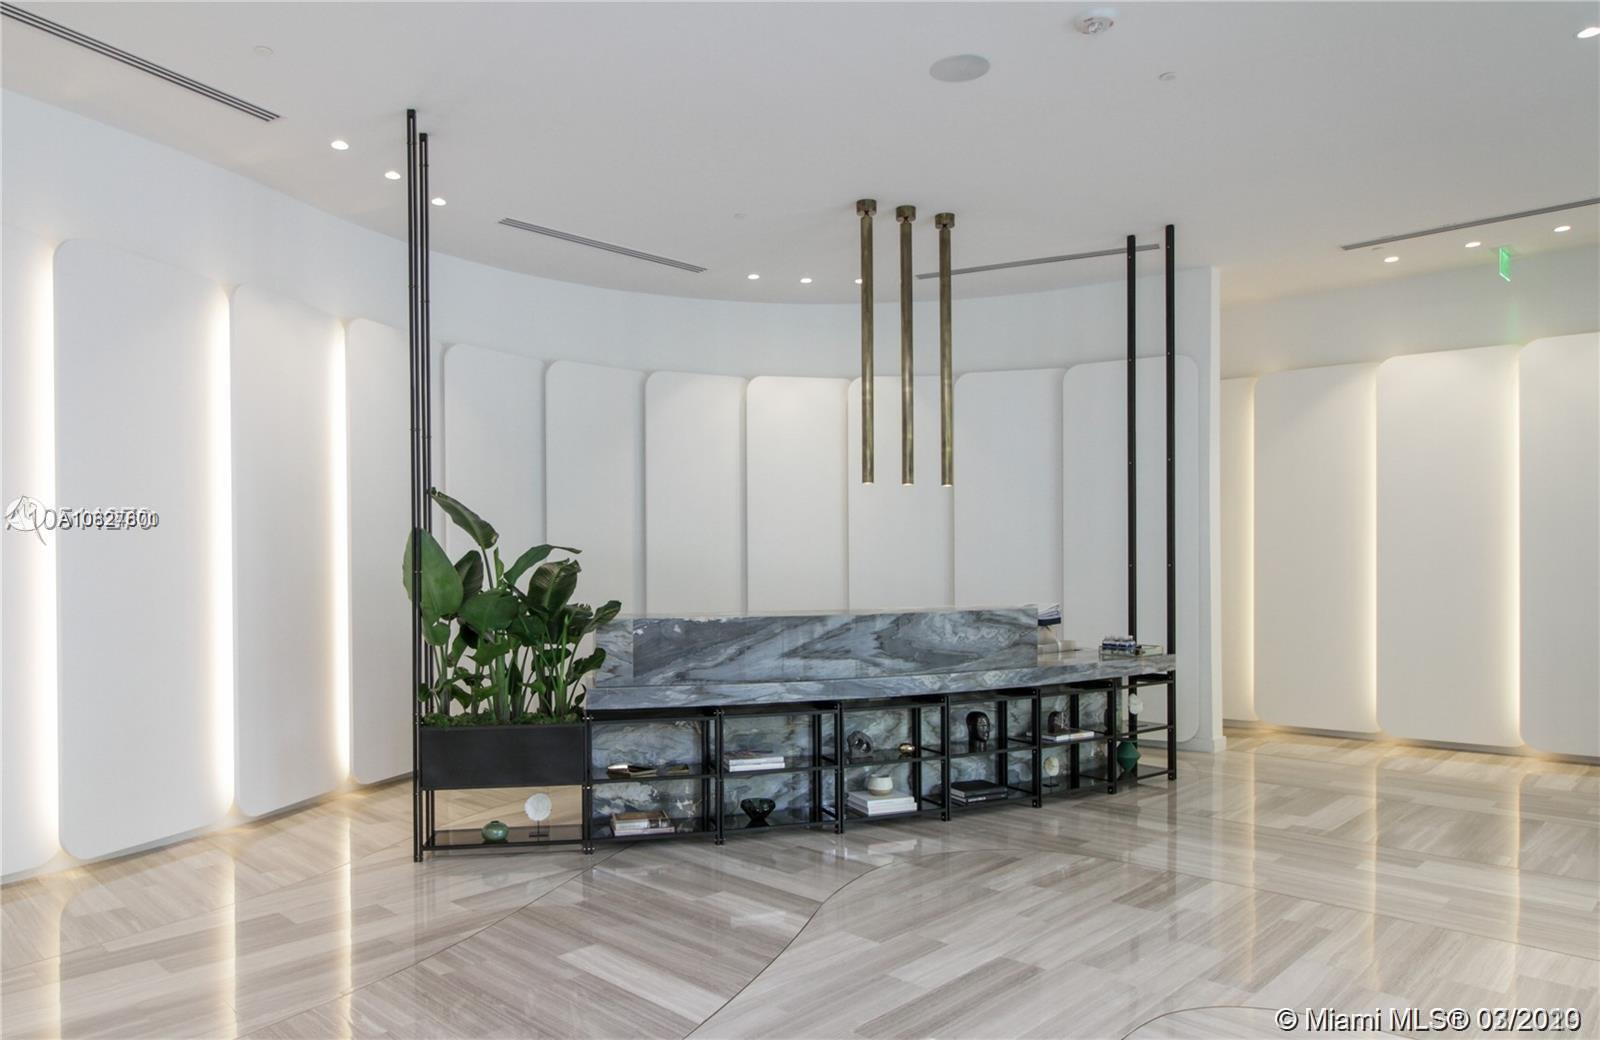 Great opportunity to live in the most luxurious condo in Coconut Grove. The kitchen designed by Will